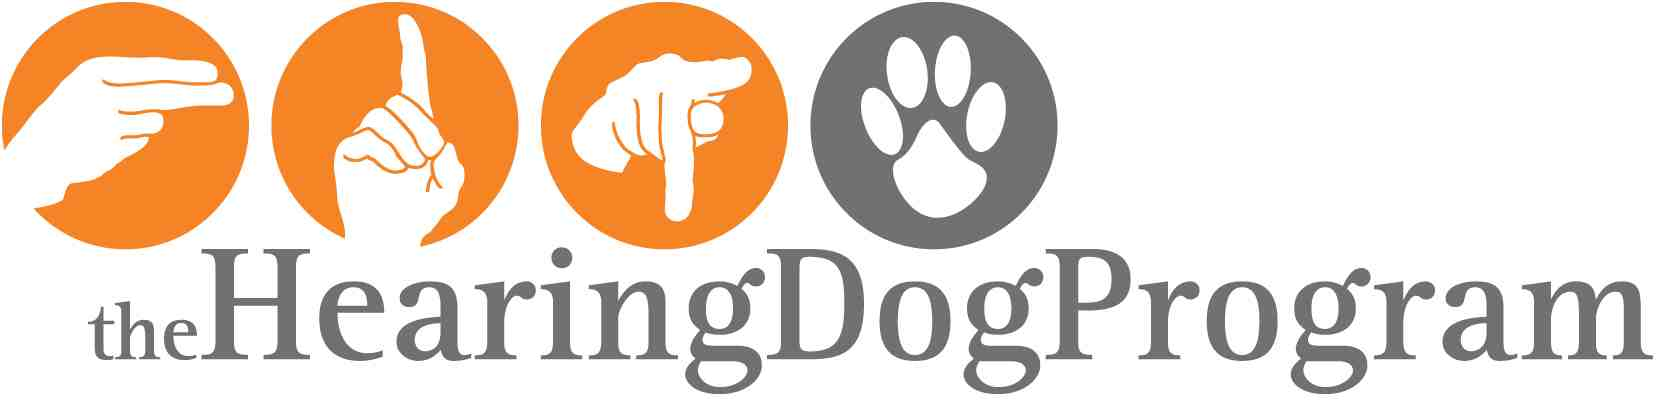 hearing dog program